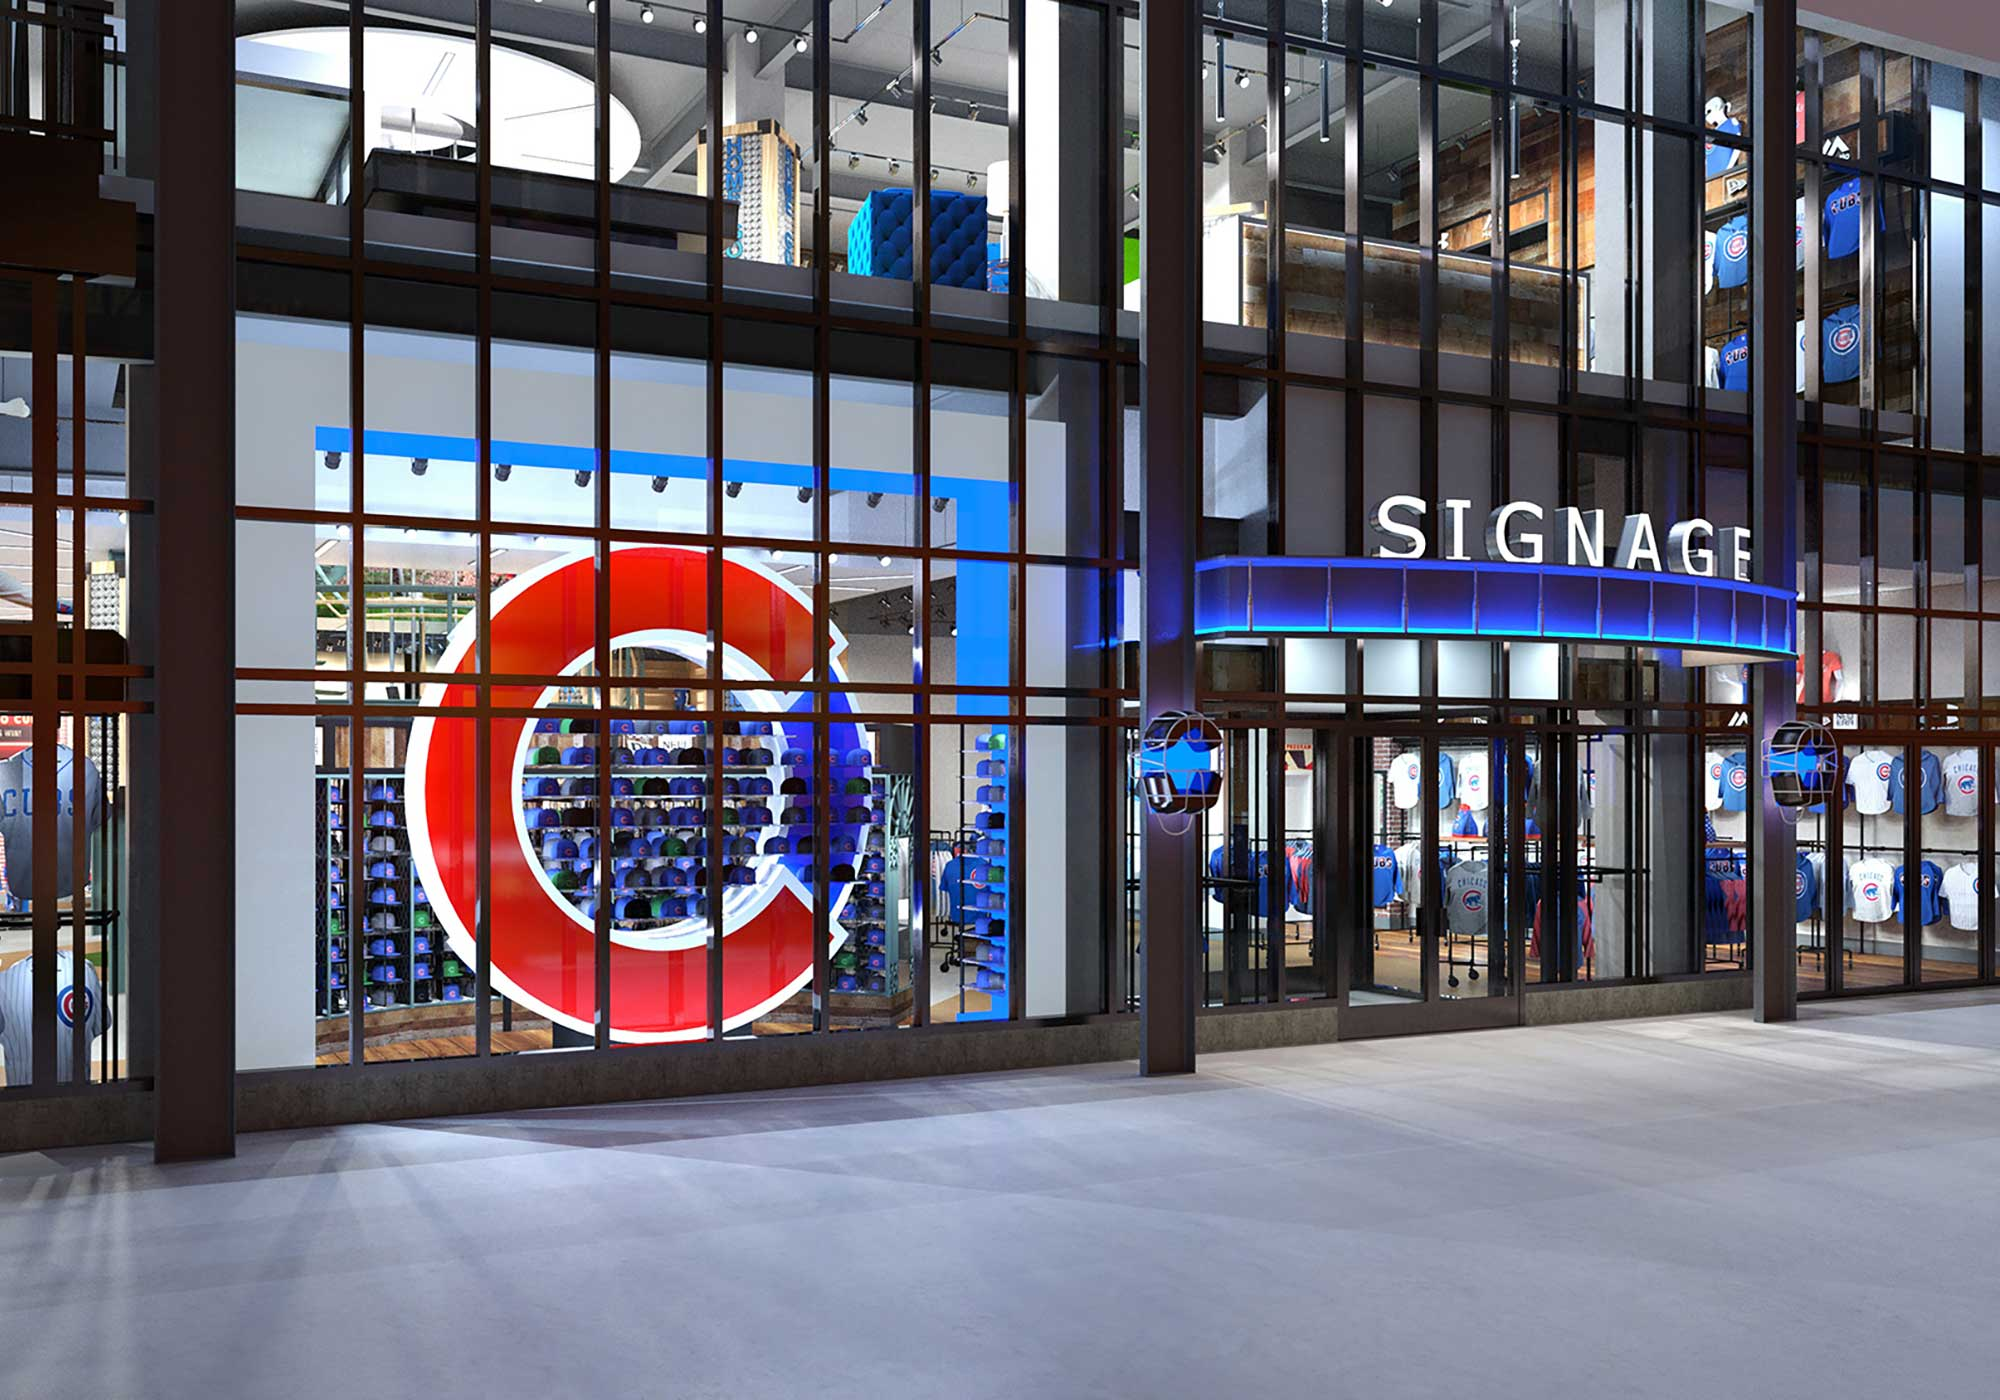 Rendering of the Cubs store with a giant red C logo on the wall